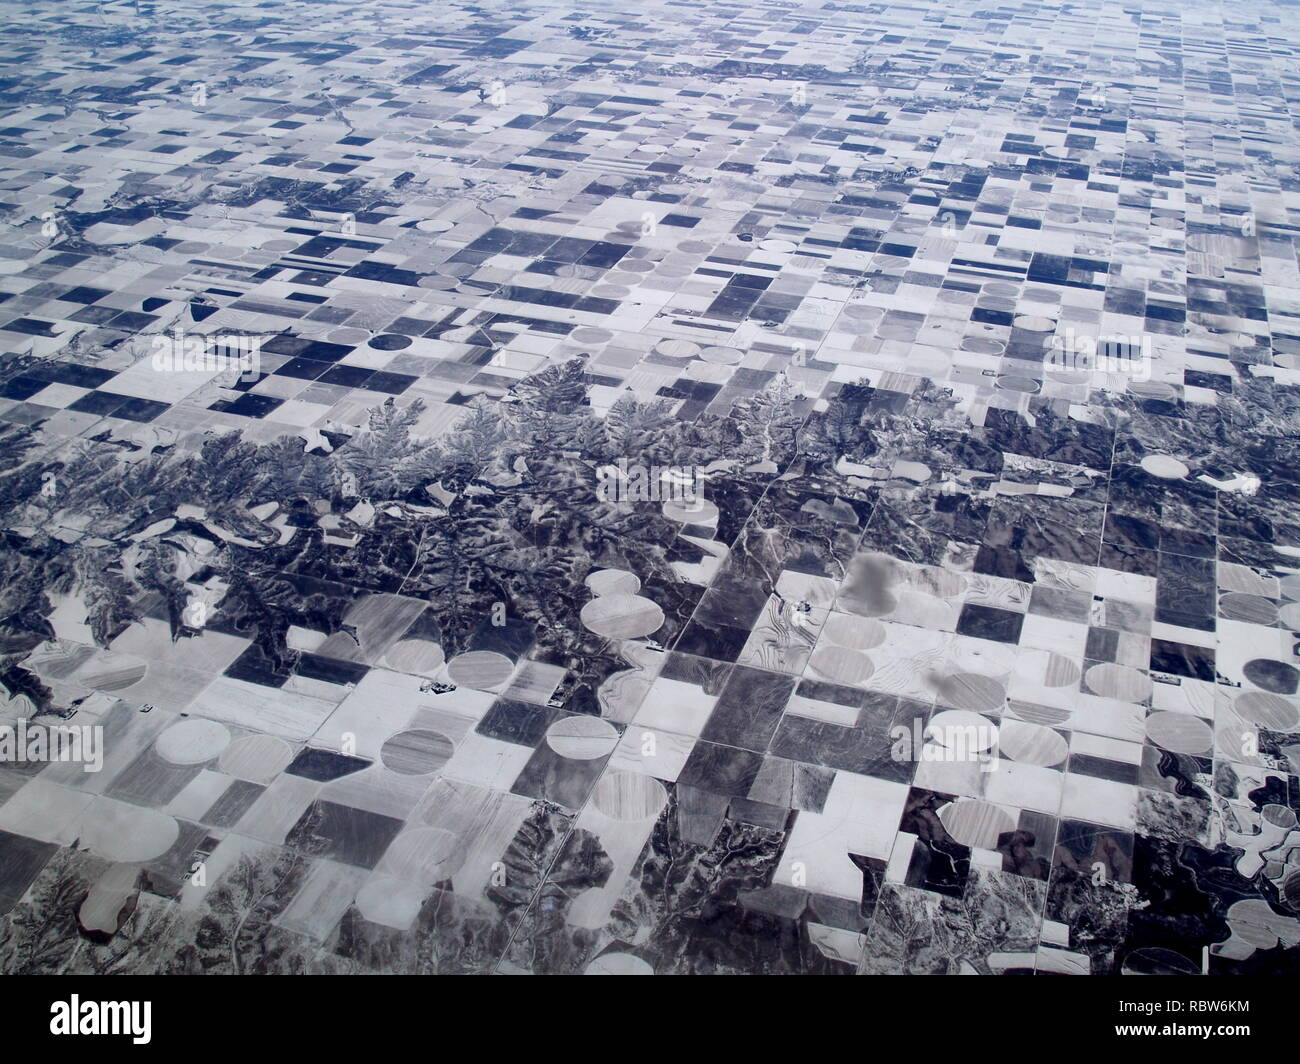 View of snow cover fields from airplane - Stock Image